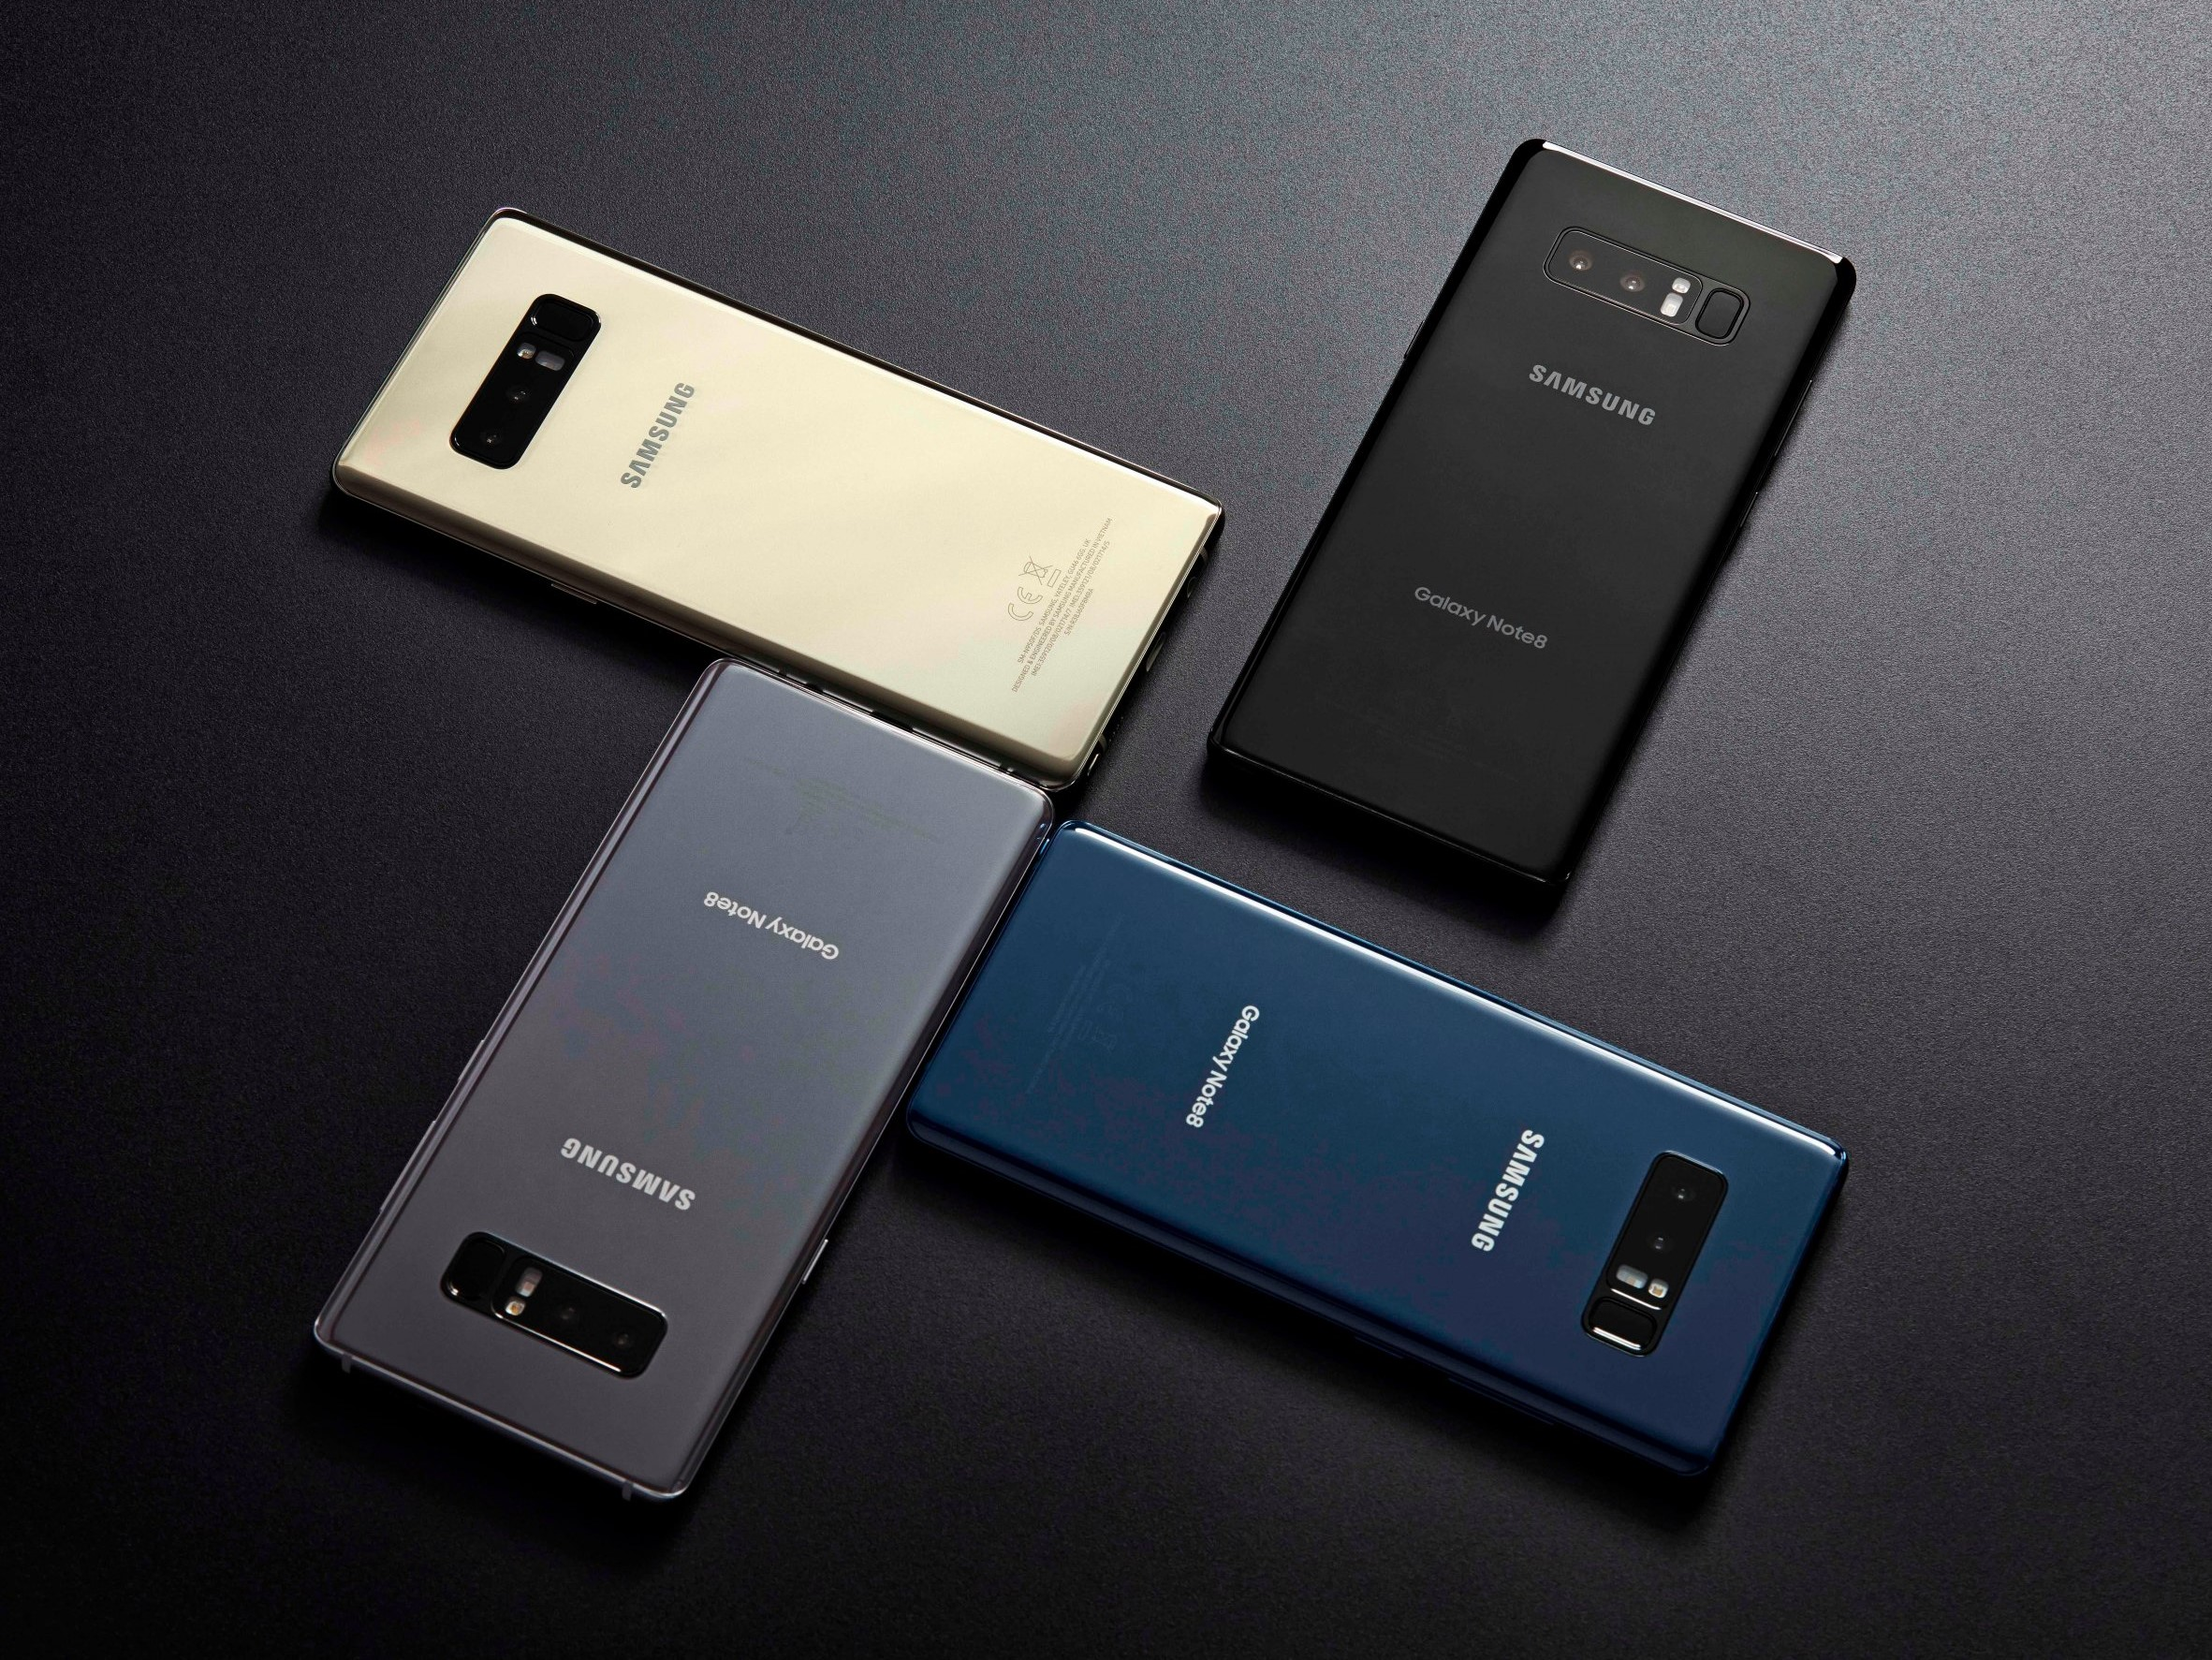 Samsung Galaxy Note 8, Samsung Galaxy Note 9